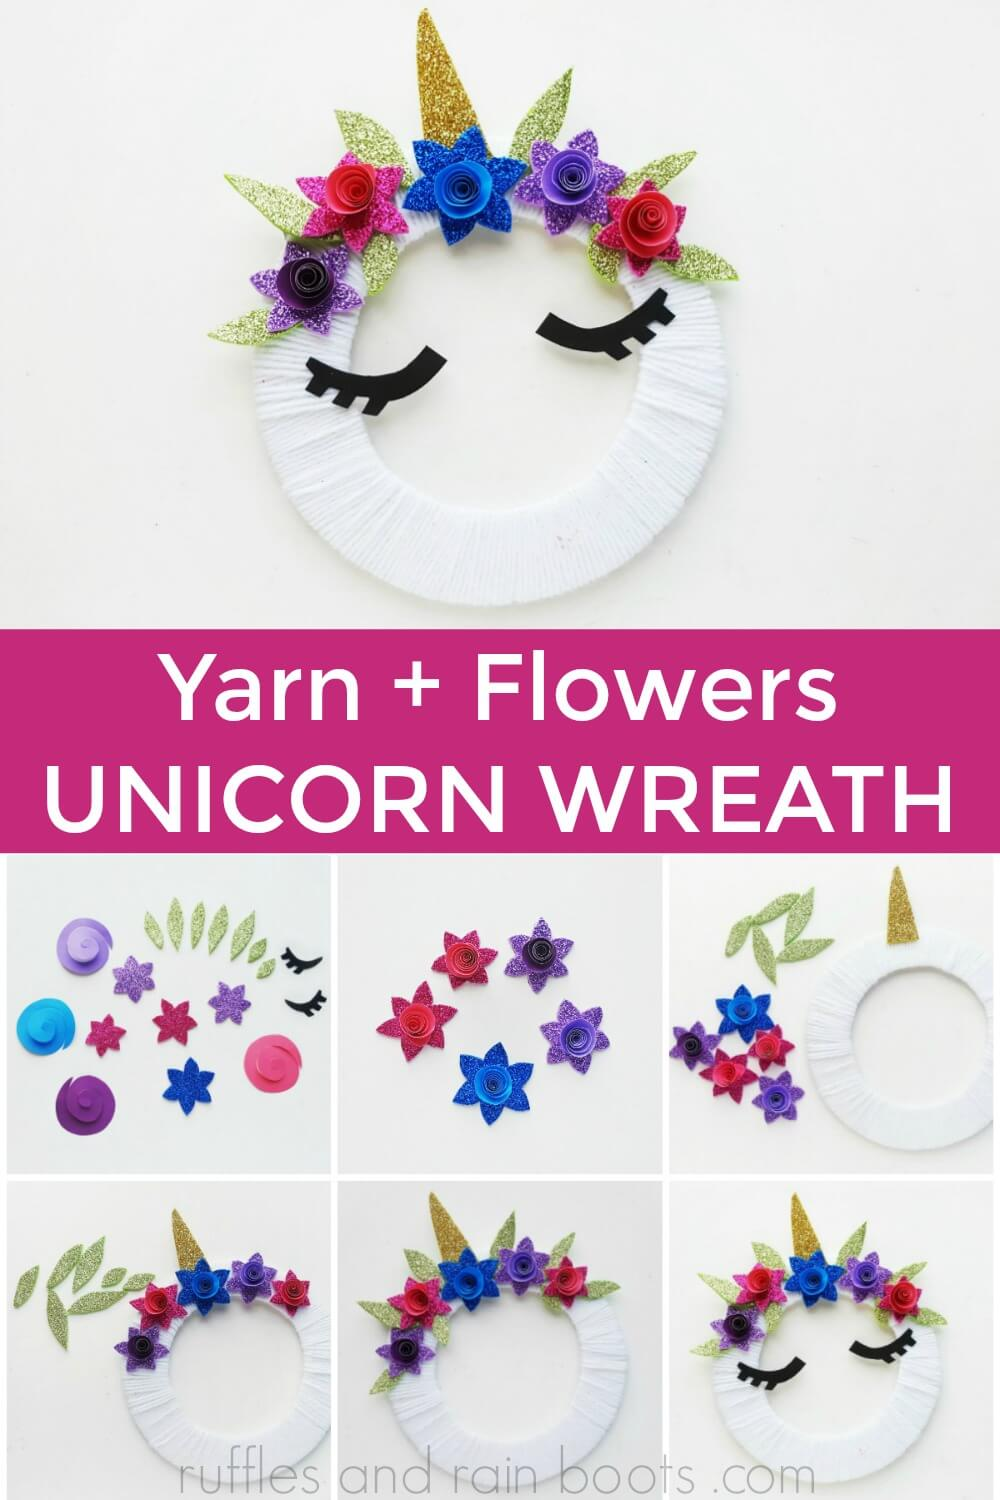 photo collage of how to make a yarn wrapped unicorn wreath and the finished unicorn wreath unicorn craft for kids with text which reads yarn + flowers unicorn wreath